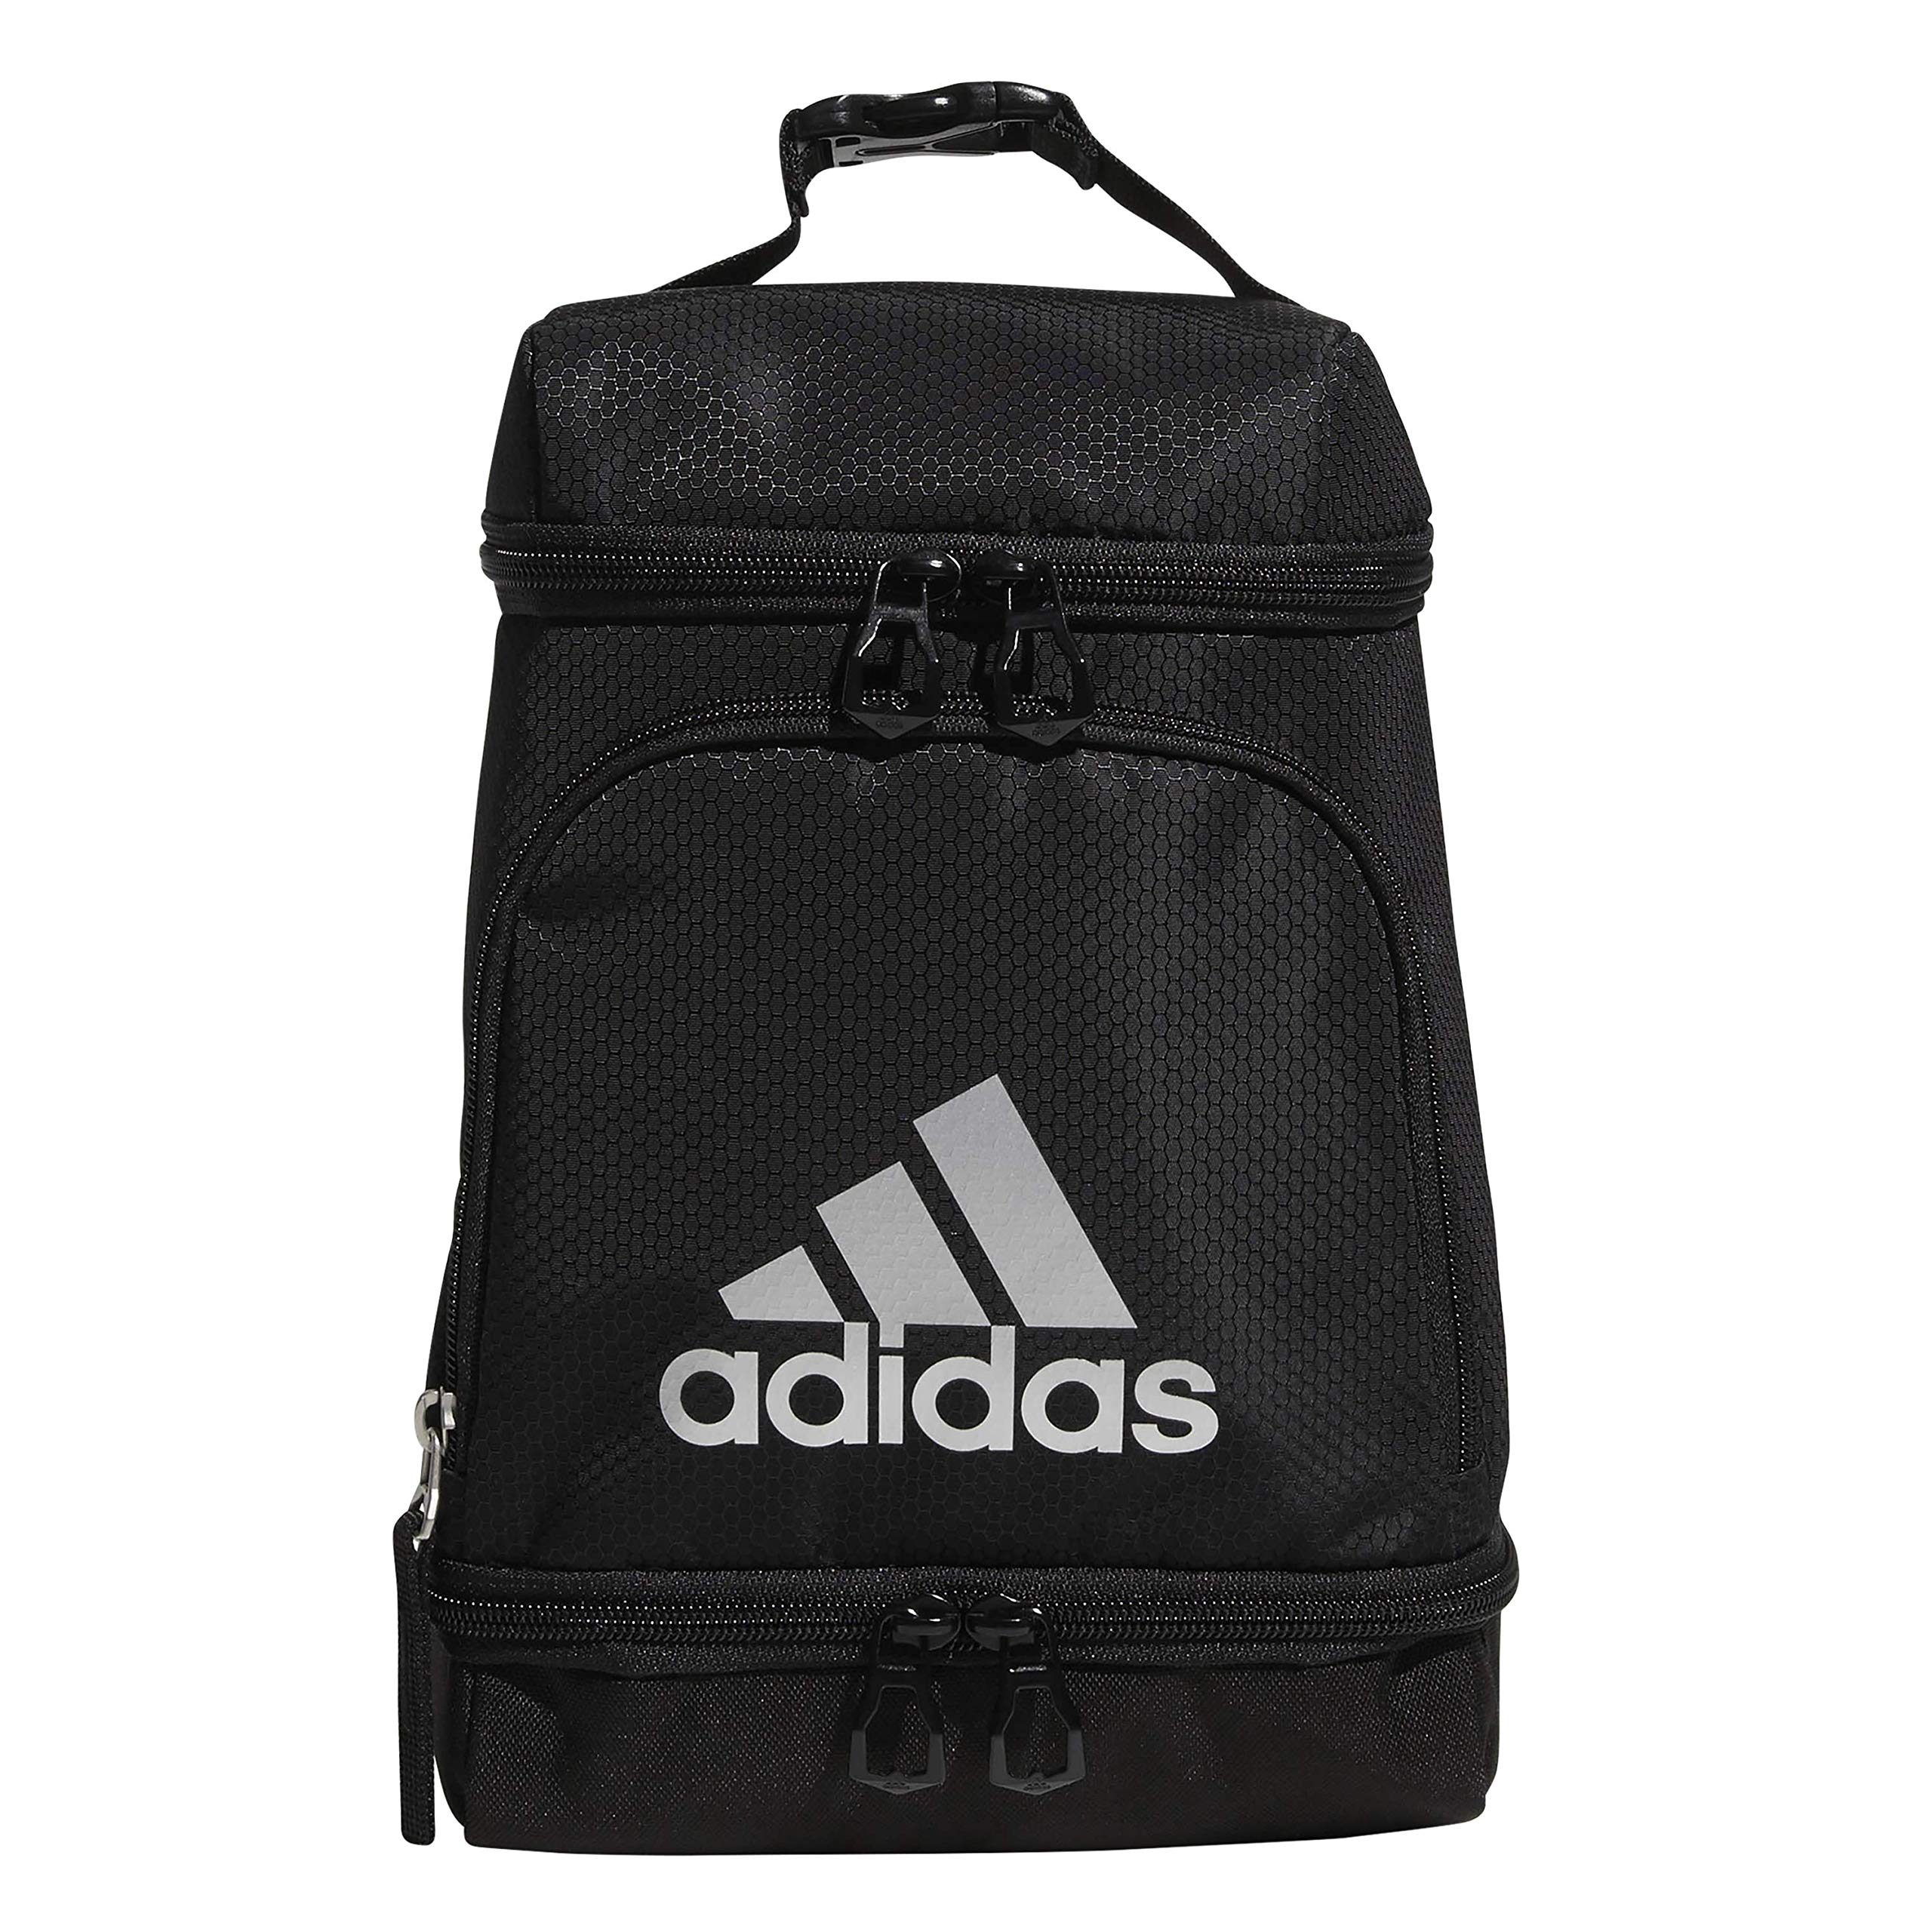 adidas Unisex Excel Insulated Lunch Bag, Black, ONE SIZE by adidas